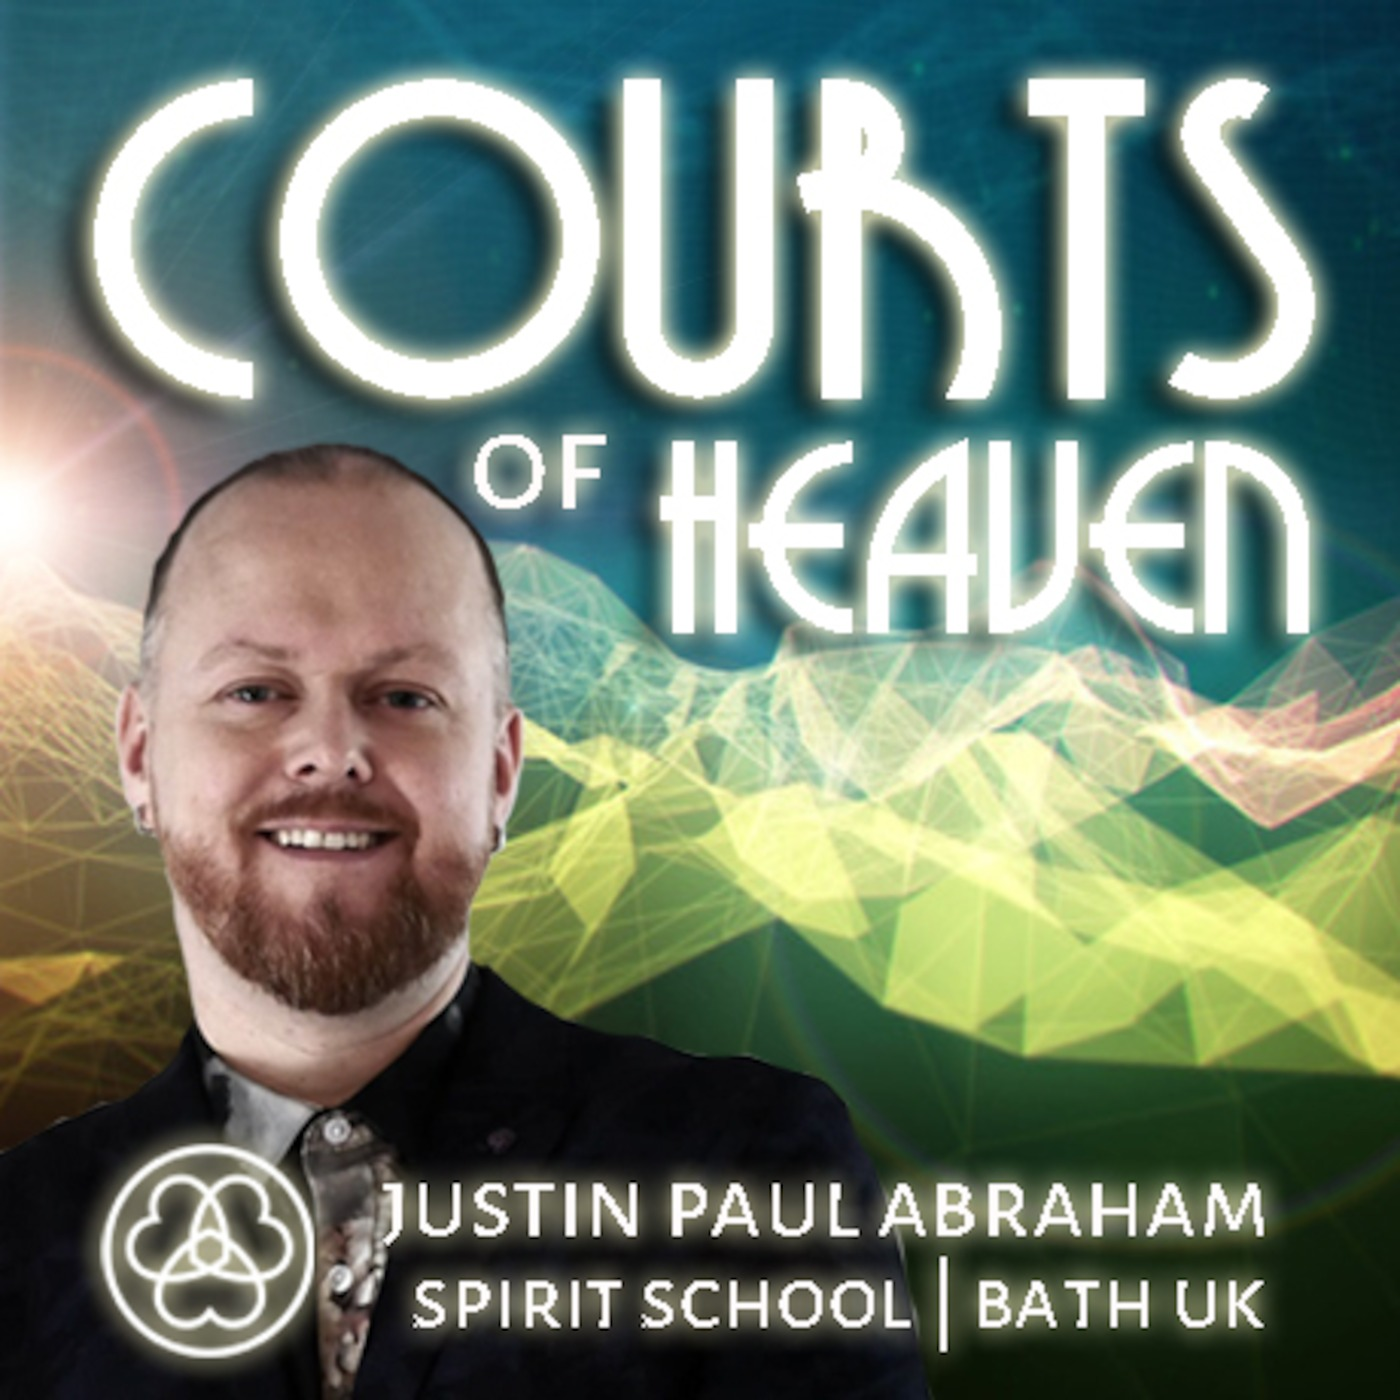 Courts Of Heaven | Justin Paul Abraham Company Of Burning